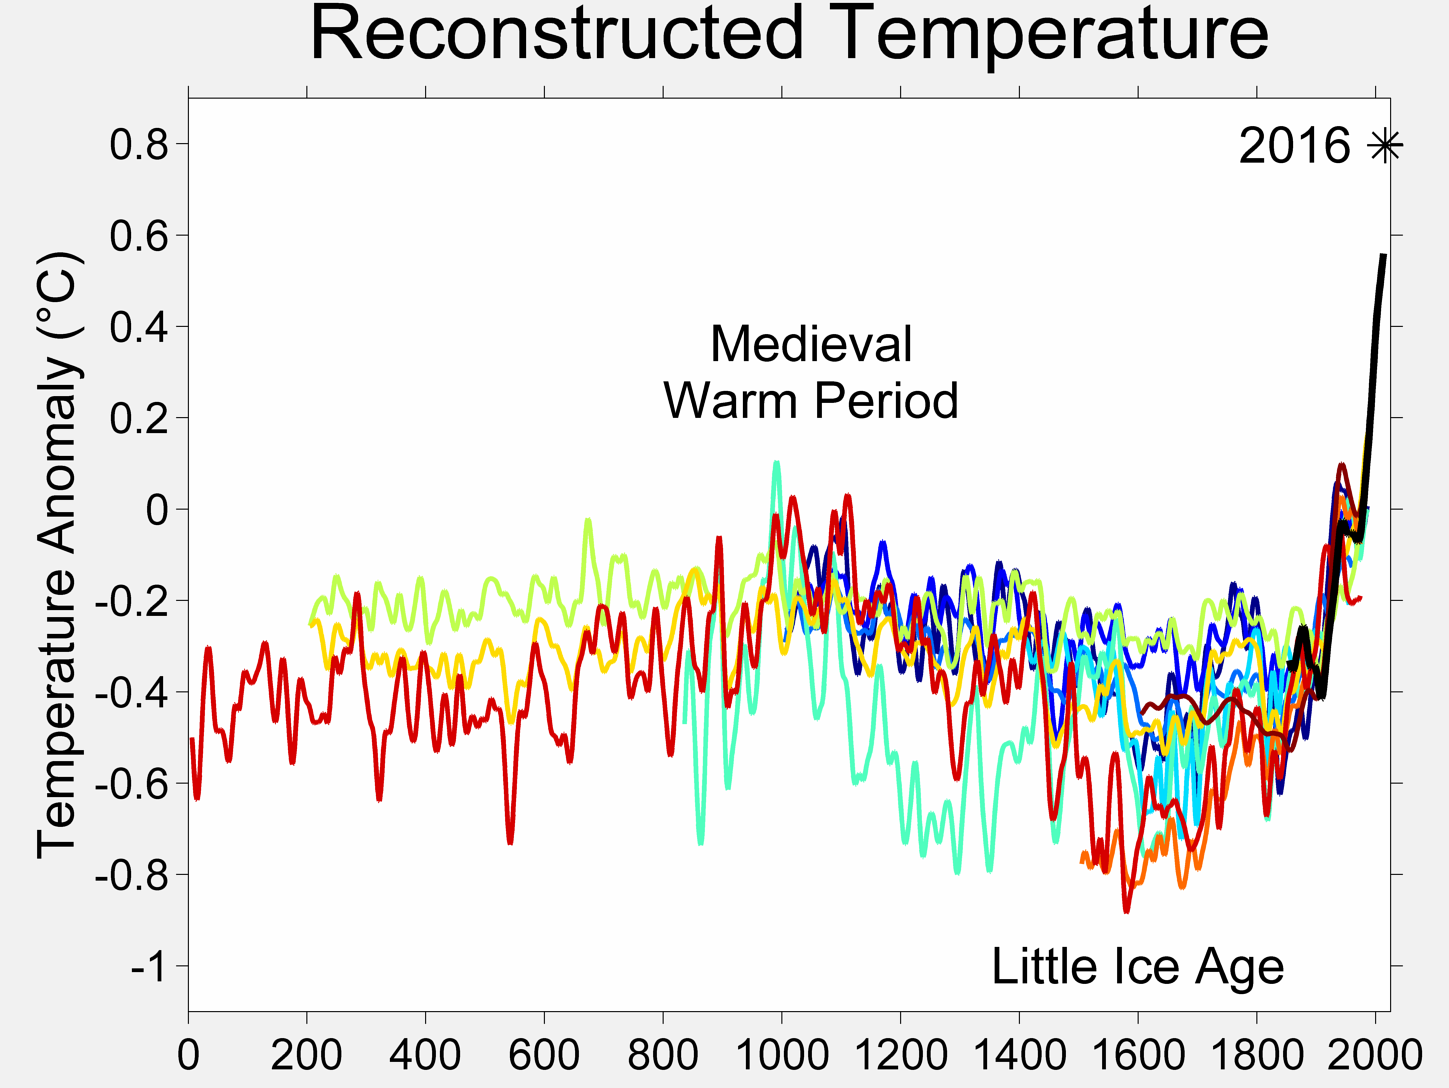 https://upload.wikimedia.org/wikipedia/commons/c/c1/2000_Year_Temperature_Comparison.png